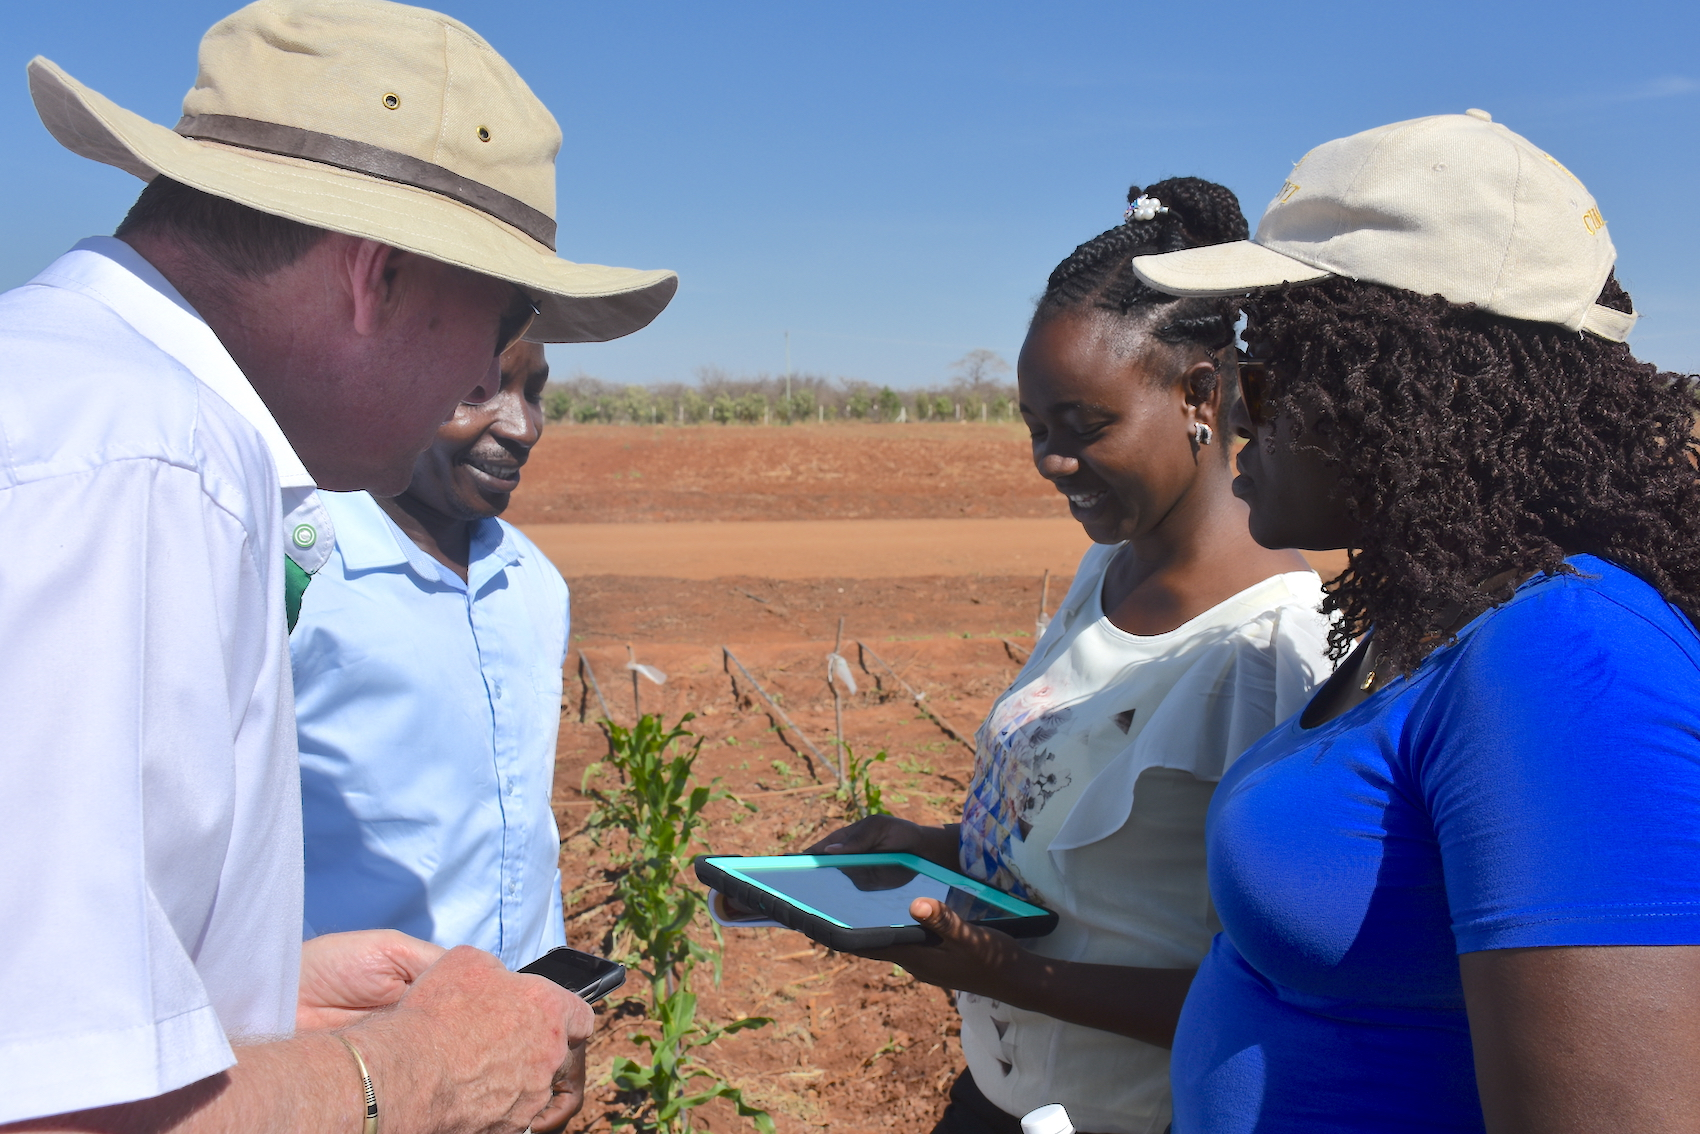 Partners test the SeedAssure app on a tablet during a field visit in Kiboko, Kenya. (Photo: Jerome Bossuet/CIMMYT)